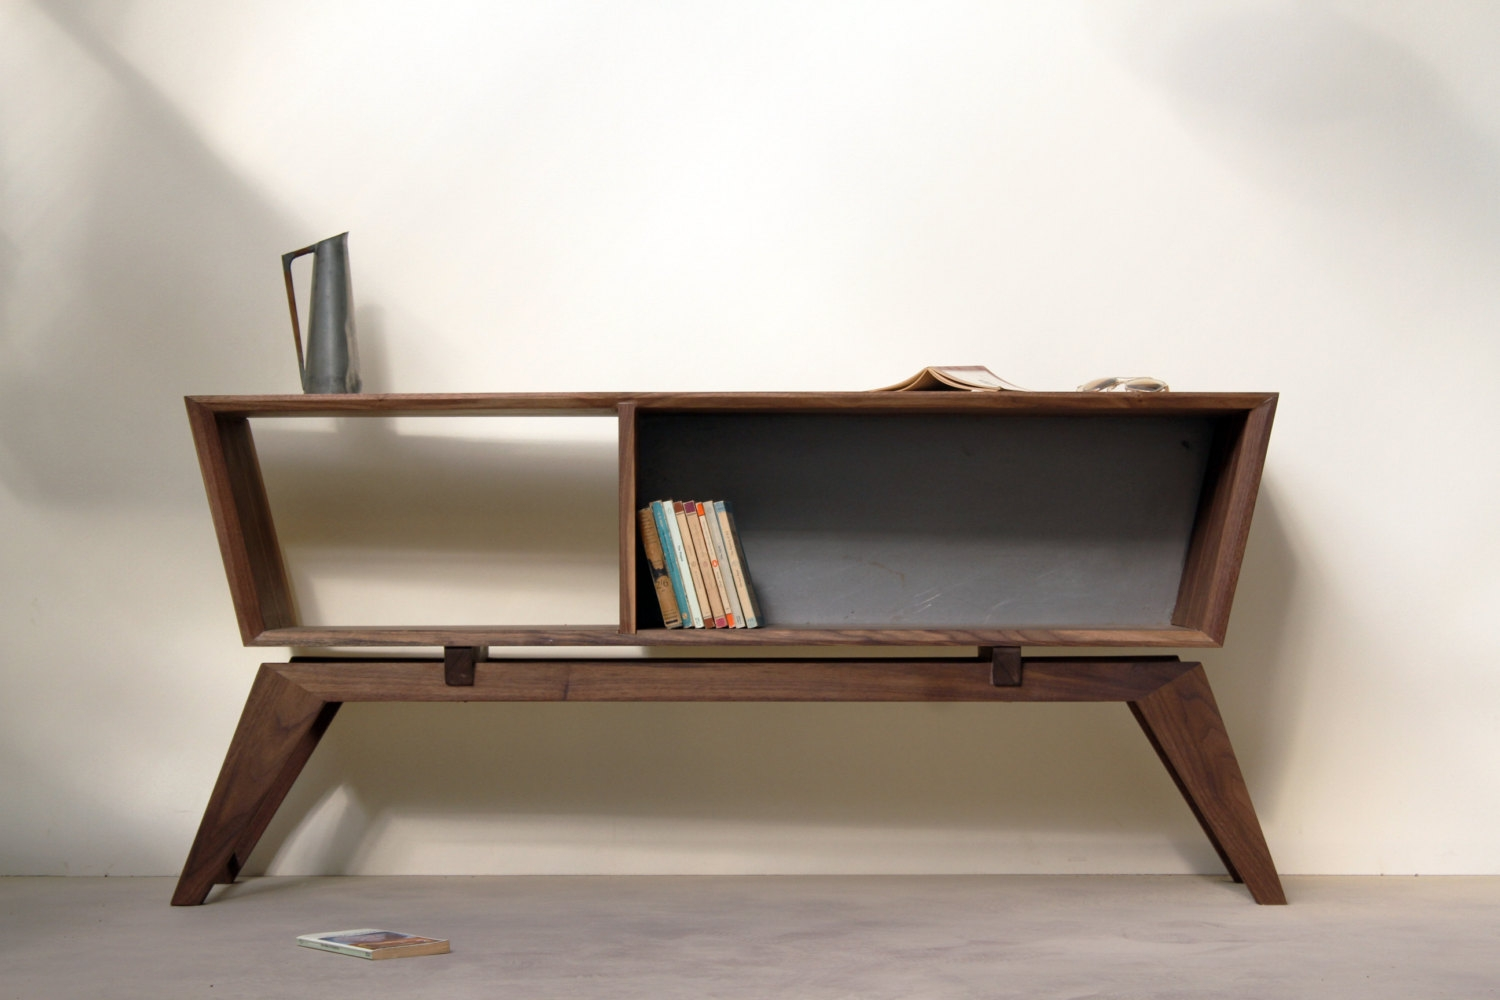 Popular Photo of Bespoke Tv Stand